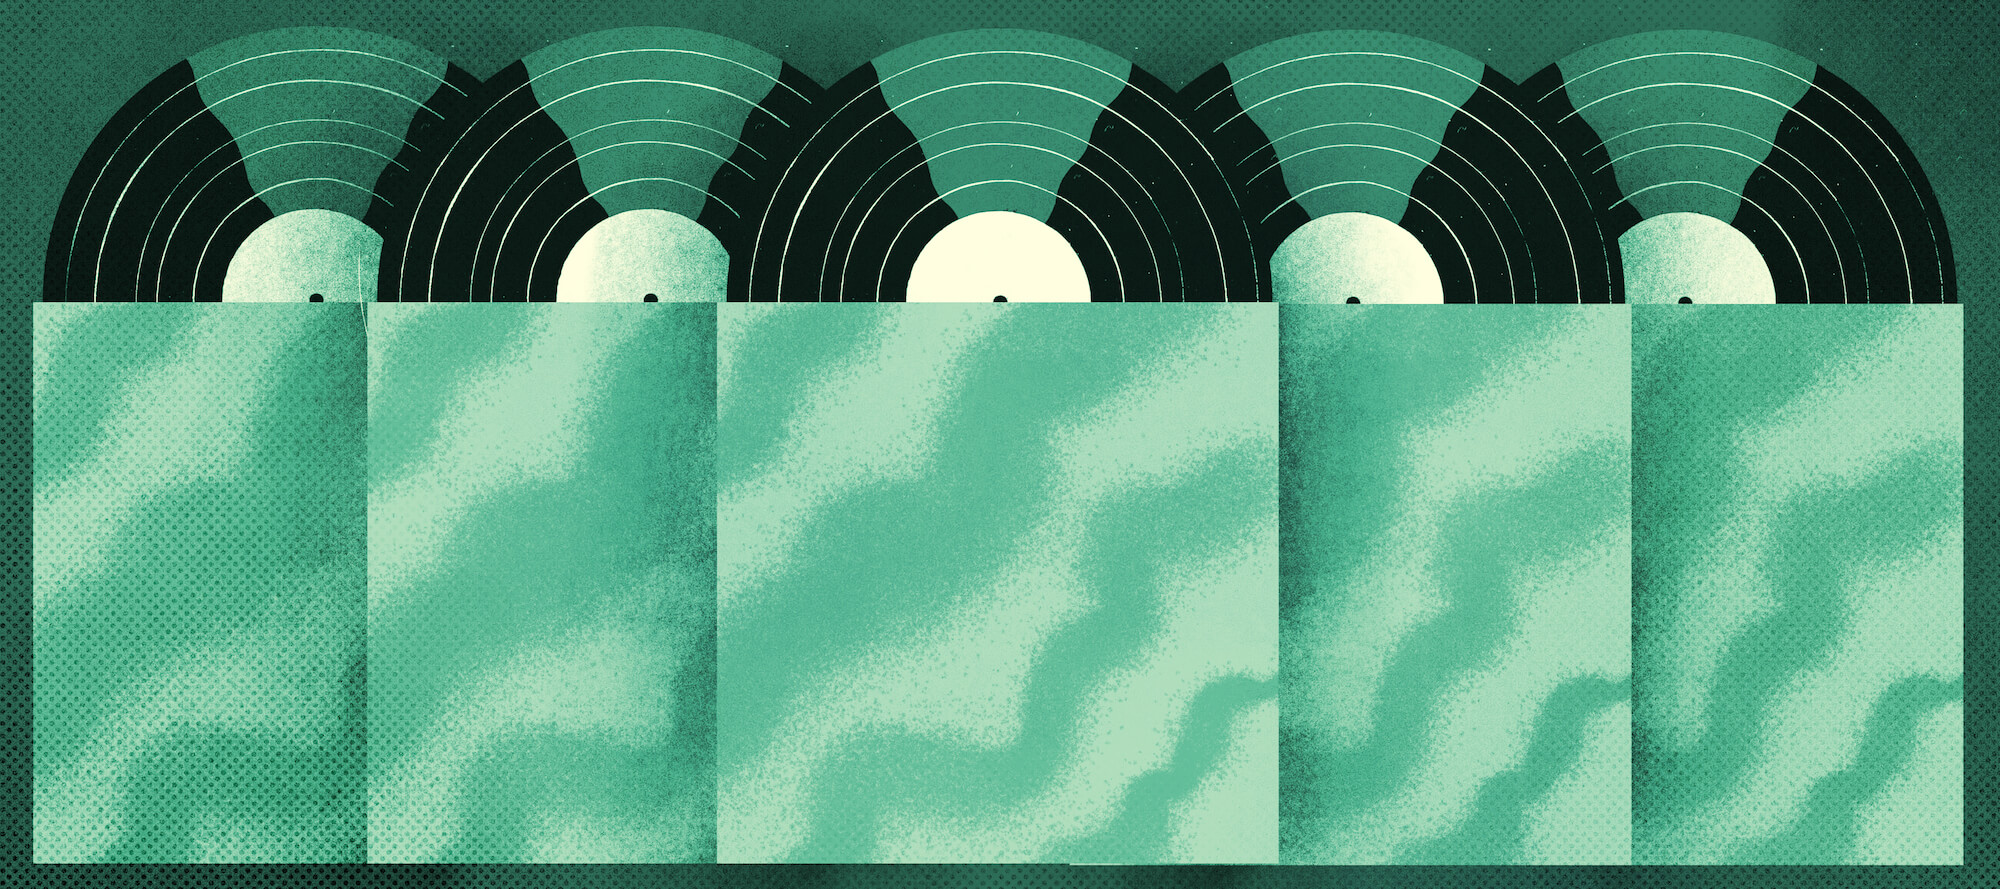 The 50 best albums of 2017 - The Vinyl Factory